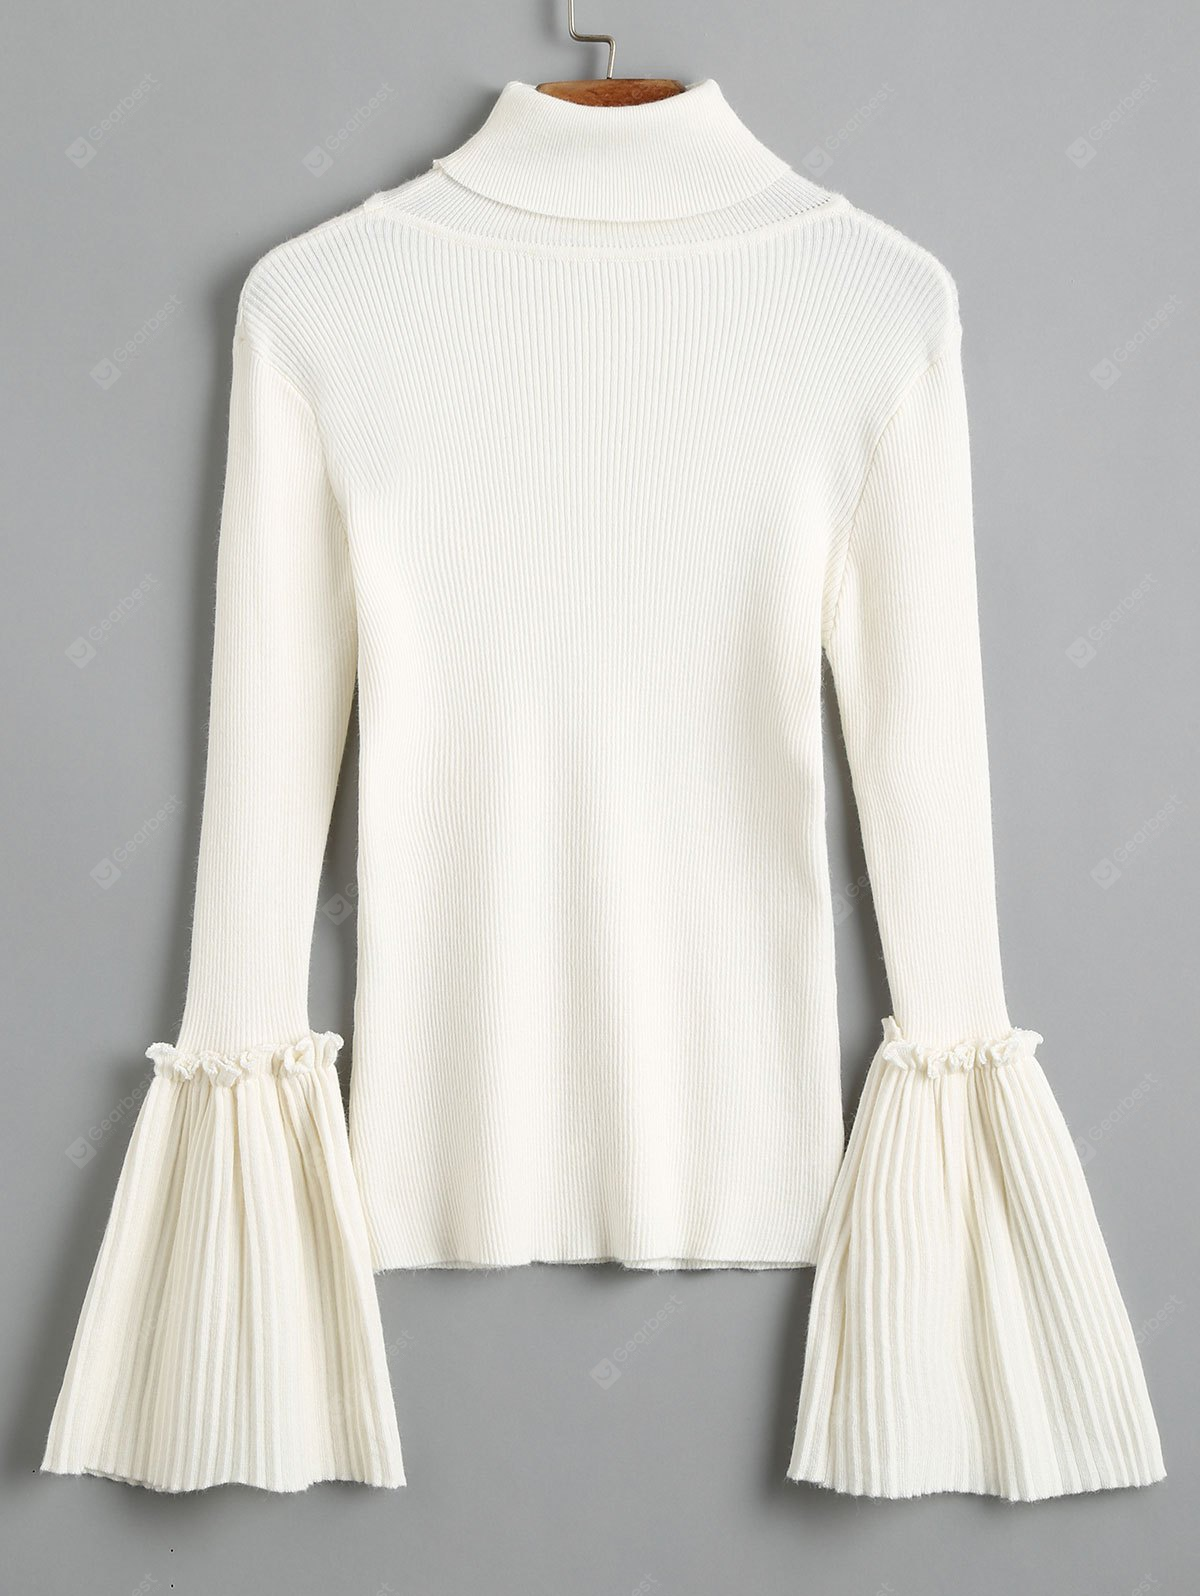 Turtleneck Flare Sleeve Knit Sweater